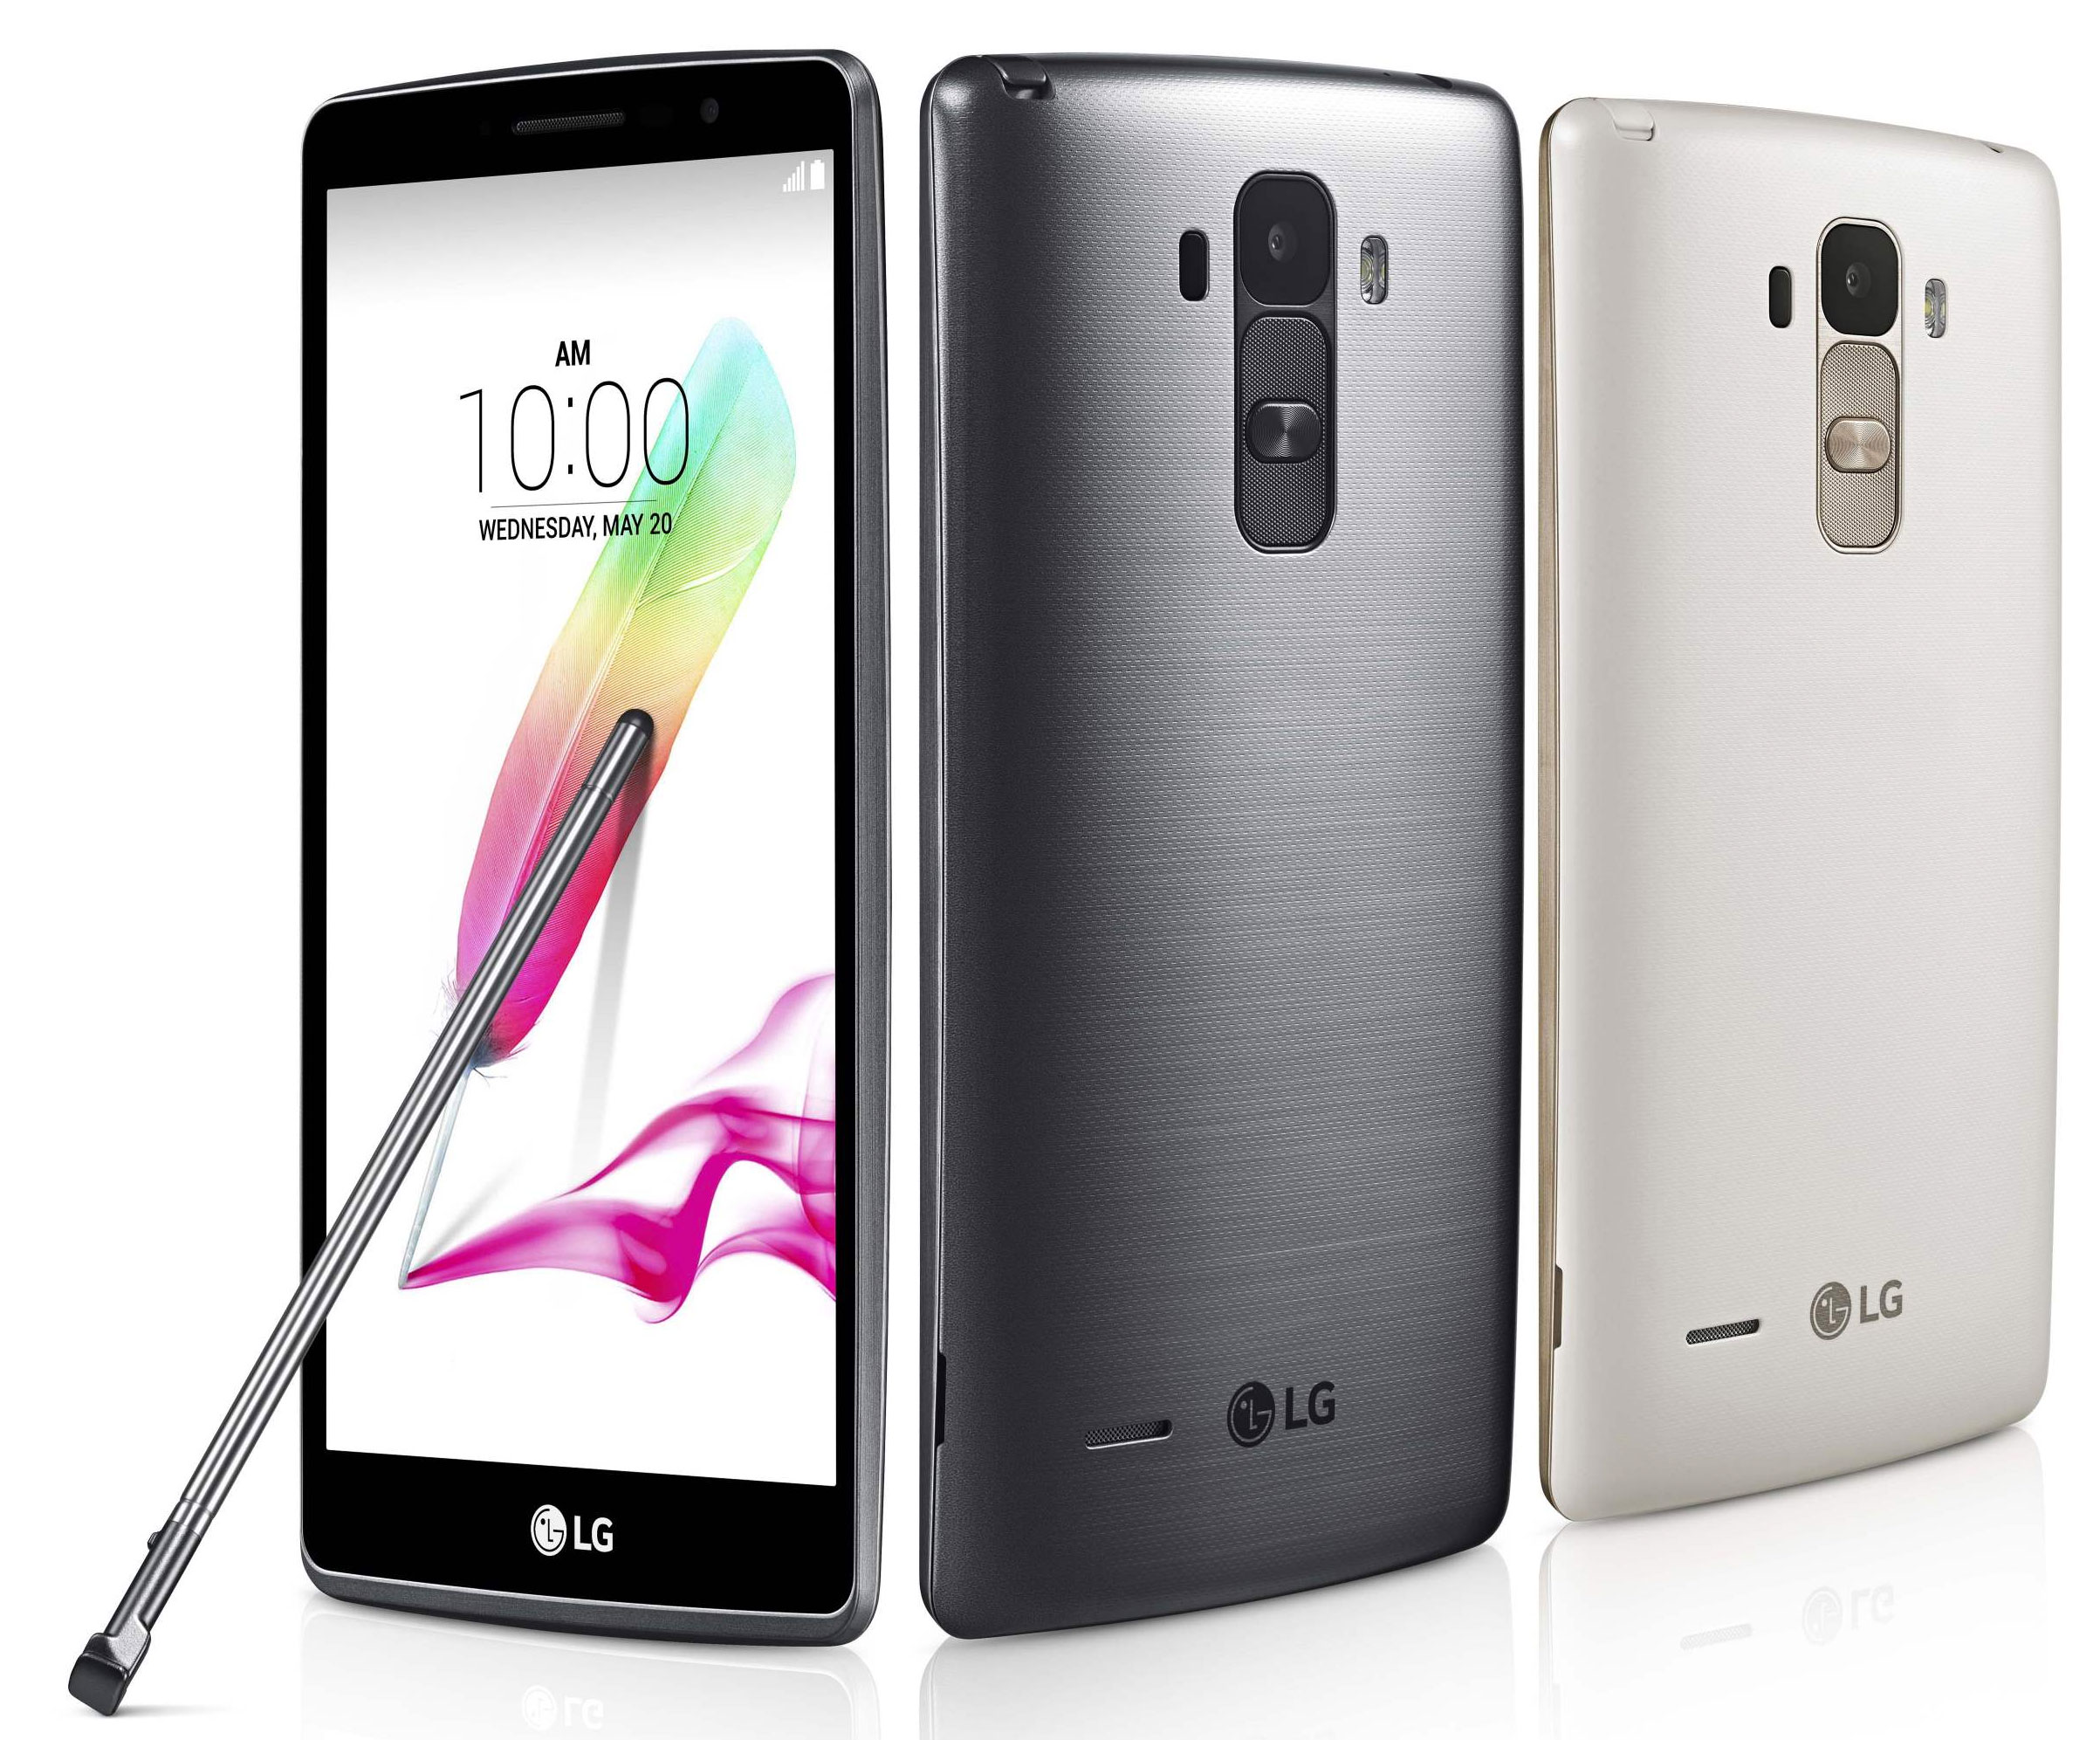 Sprint S Lg G Stylo Gets Surprising Update To Android 6 0